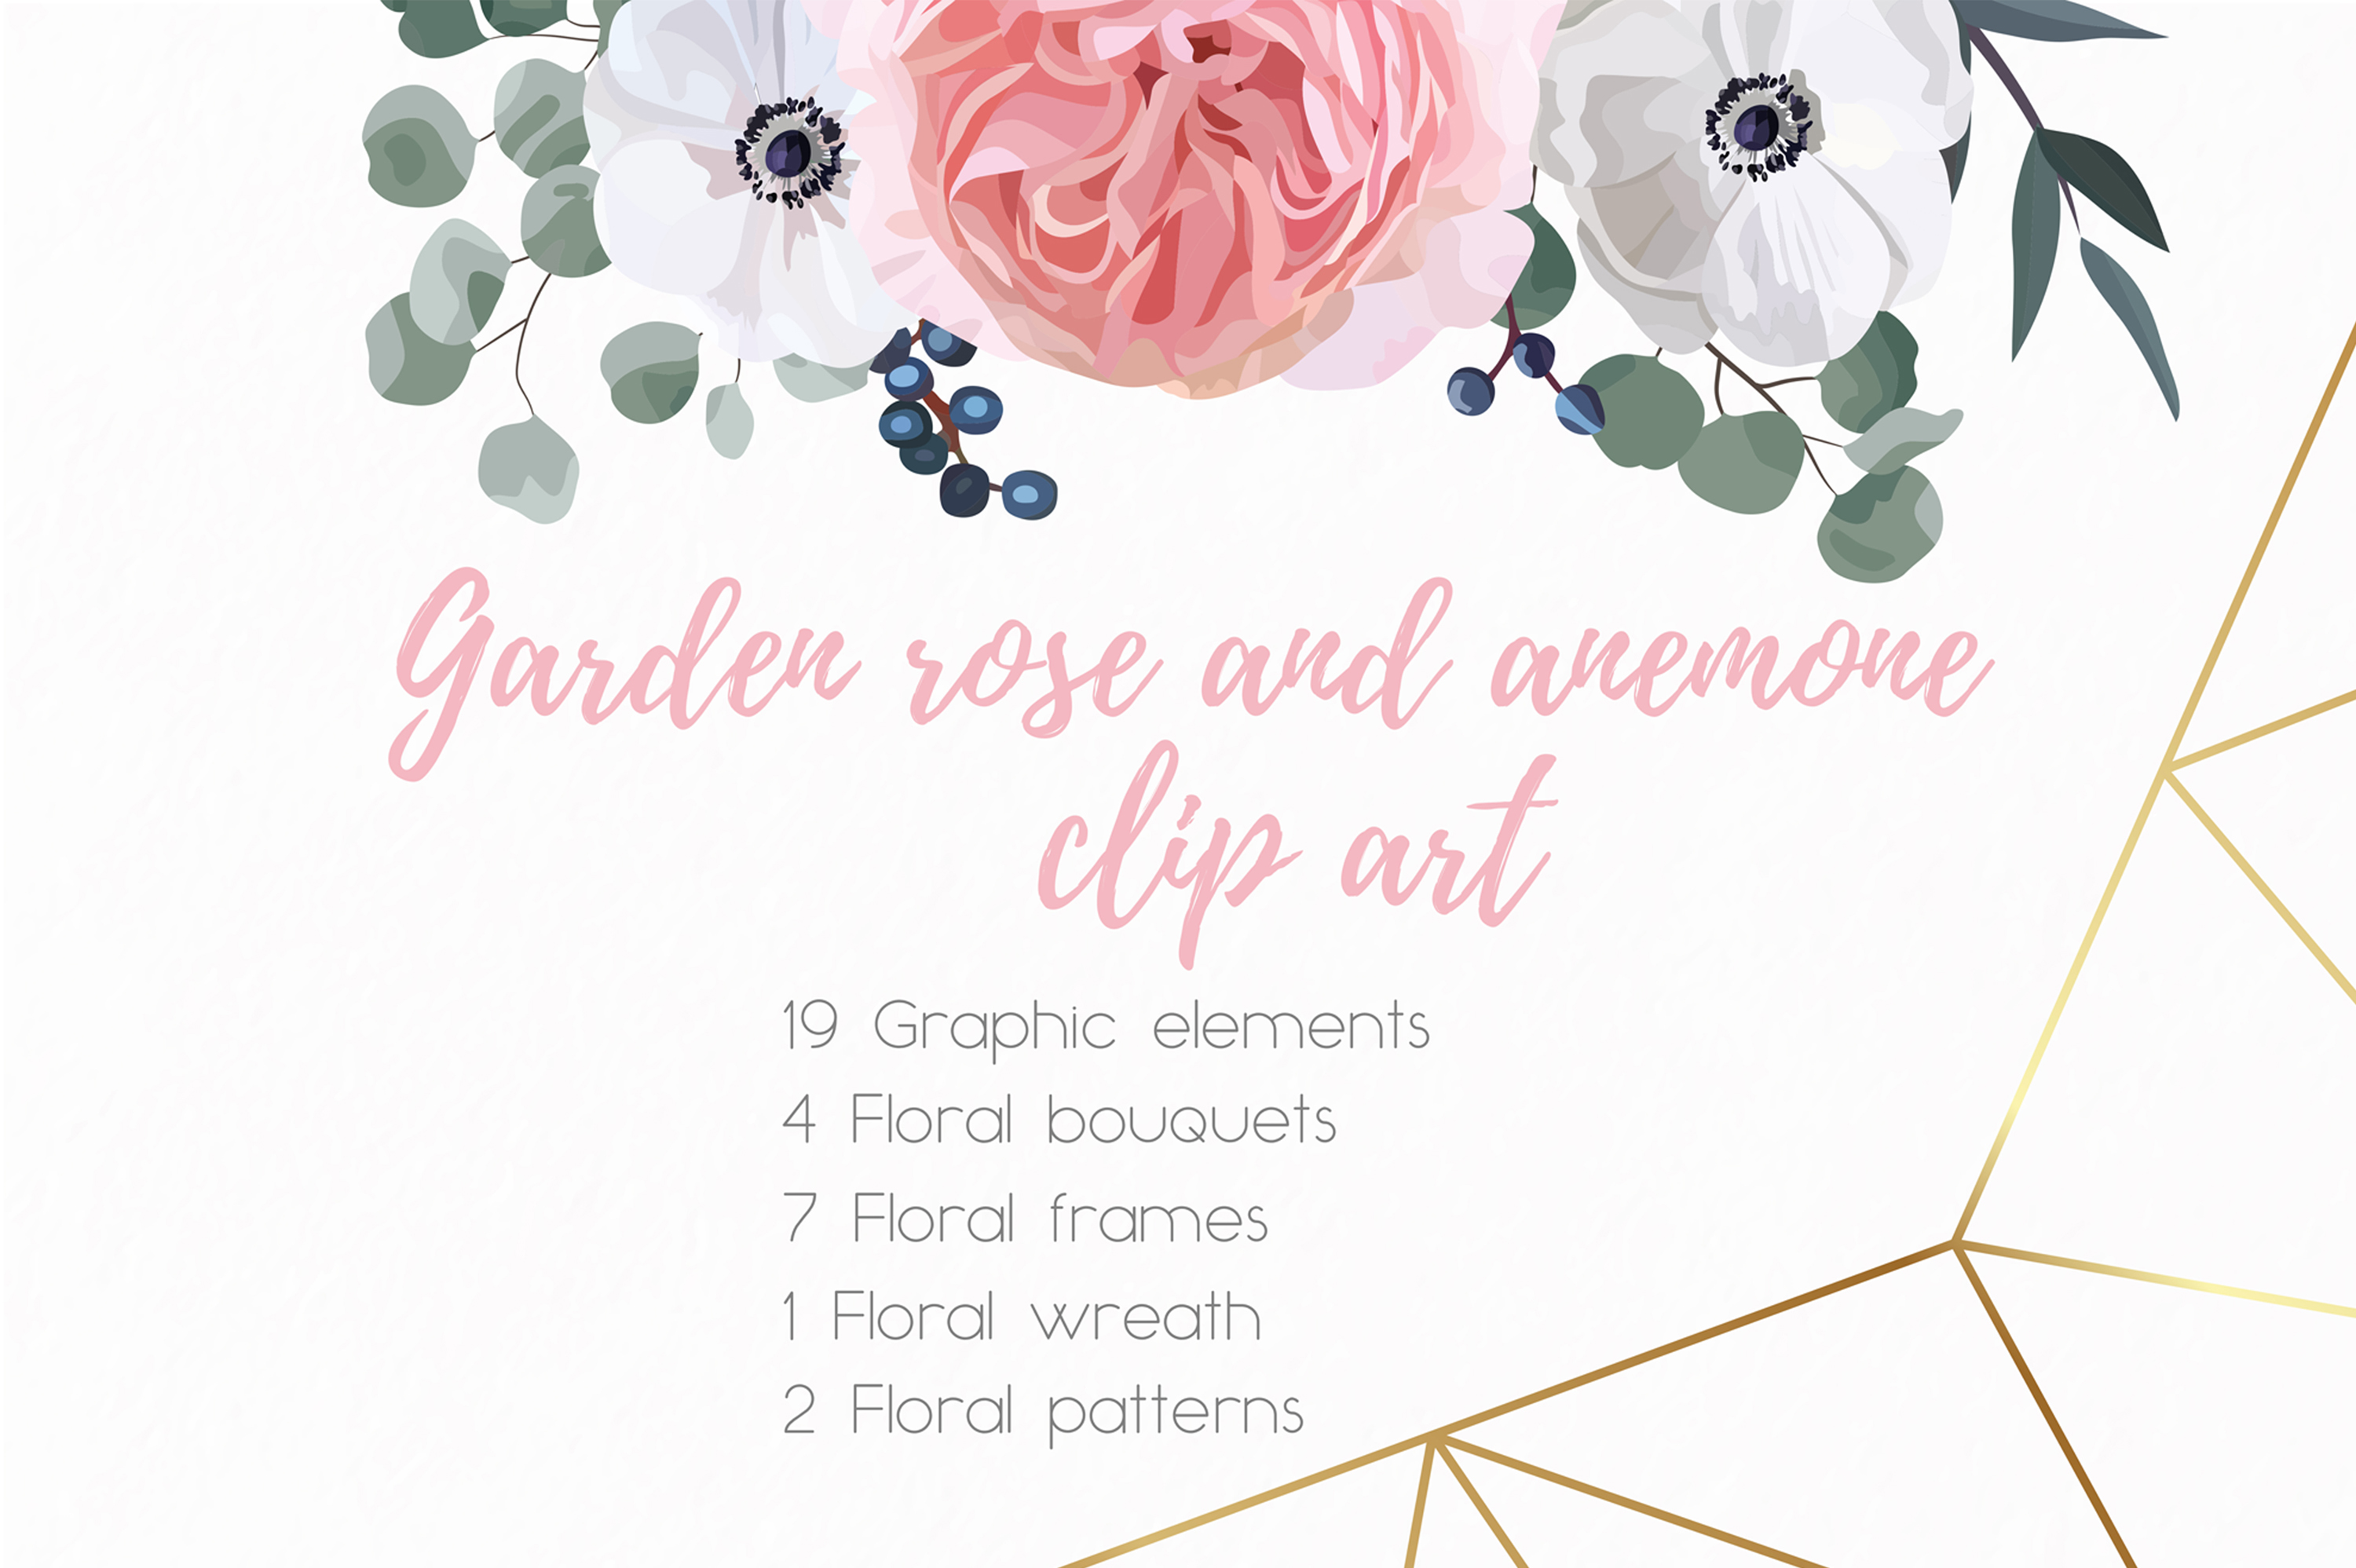 Garden Rose and Anemone - floral vector set example image 3